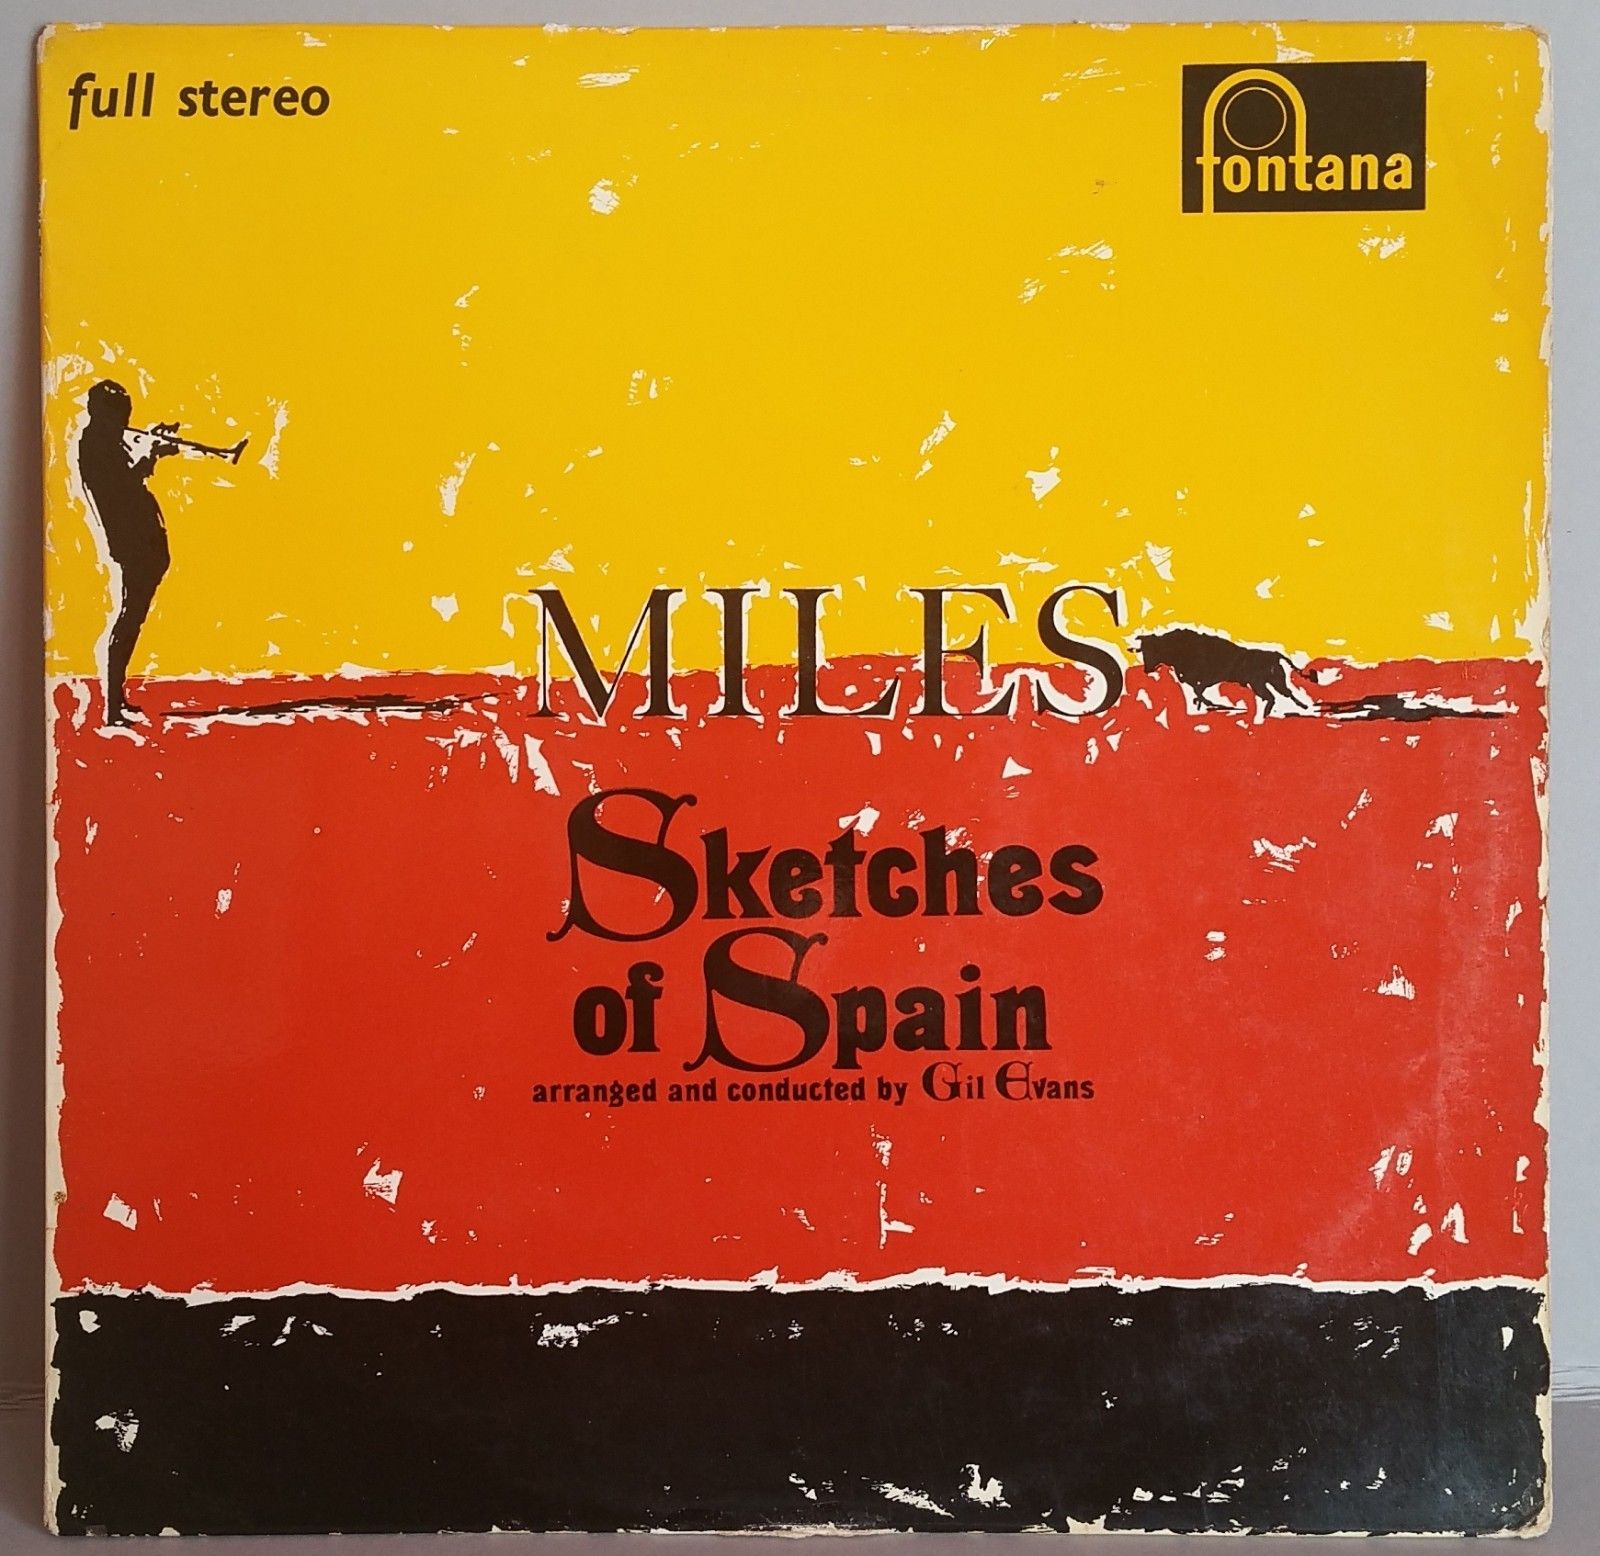 MILES DAVIS,Sketches Of Spain, First UK Fontana LP, 1960, FULL STEREO